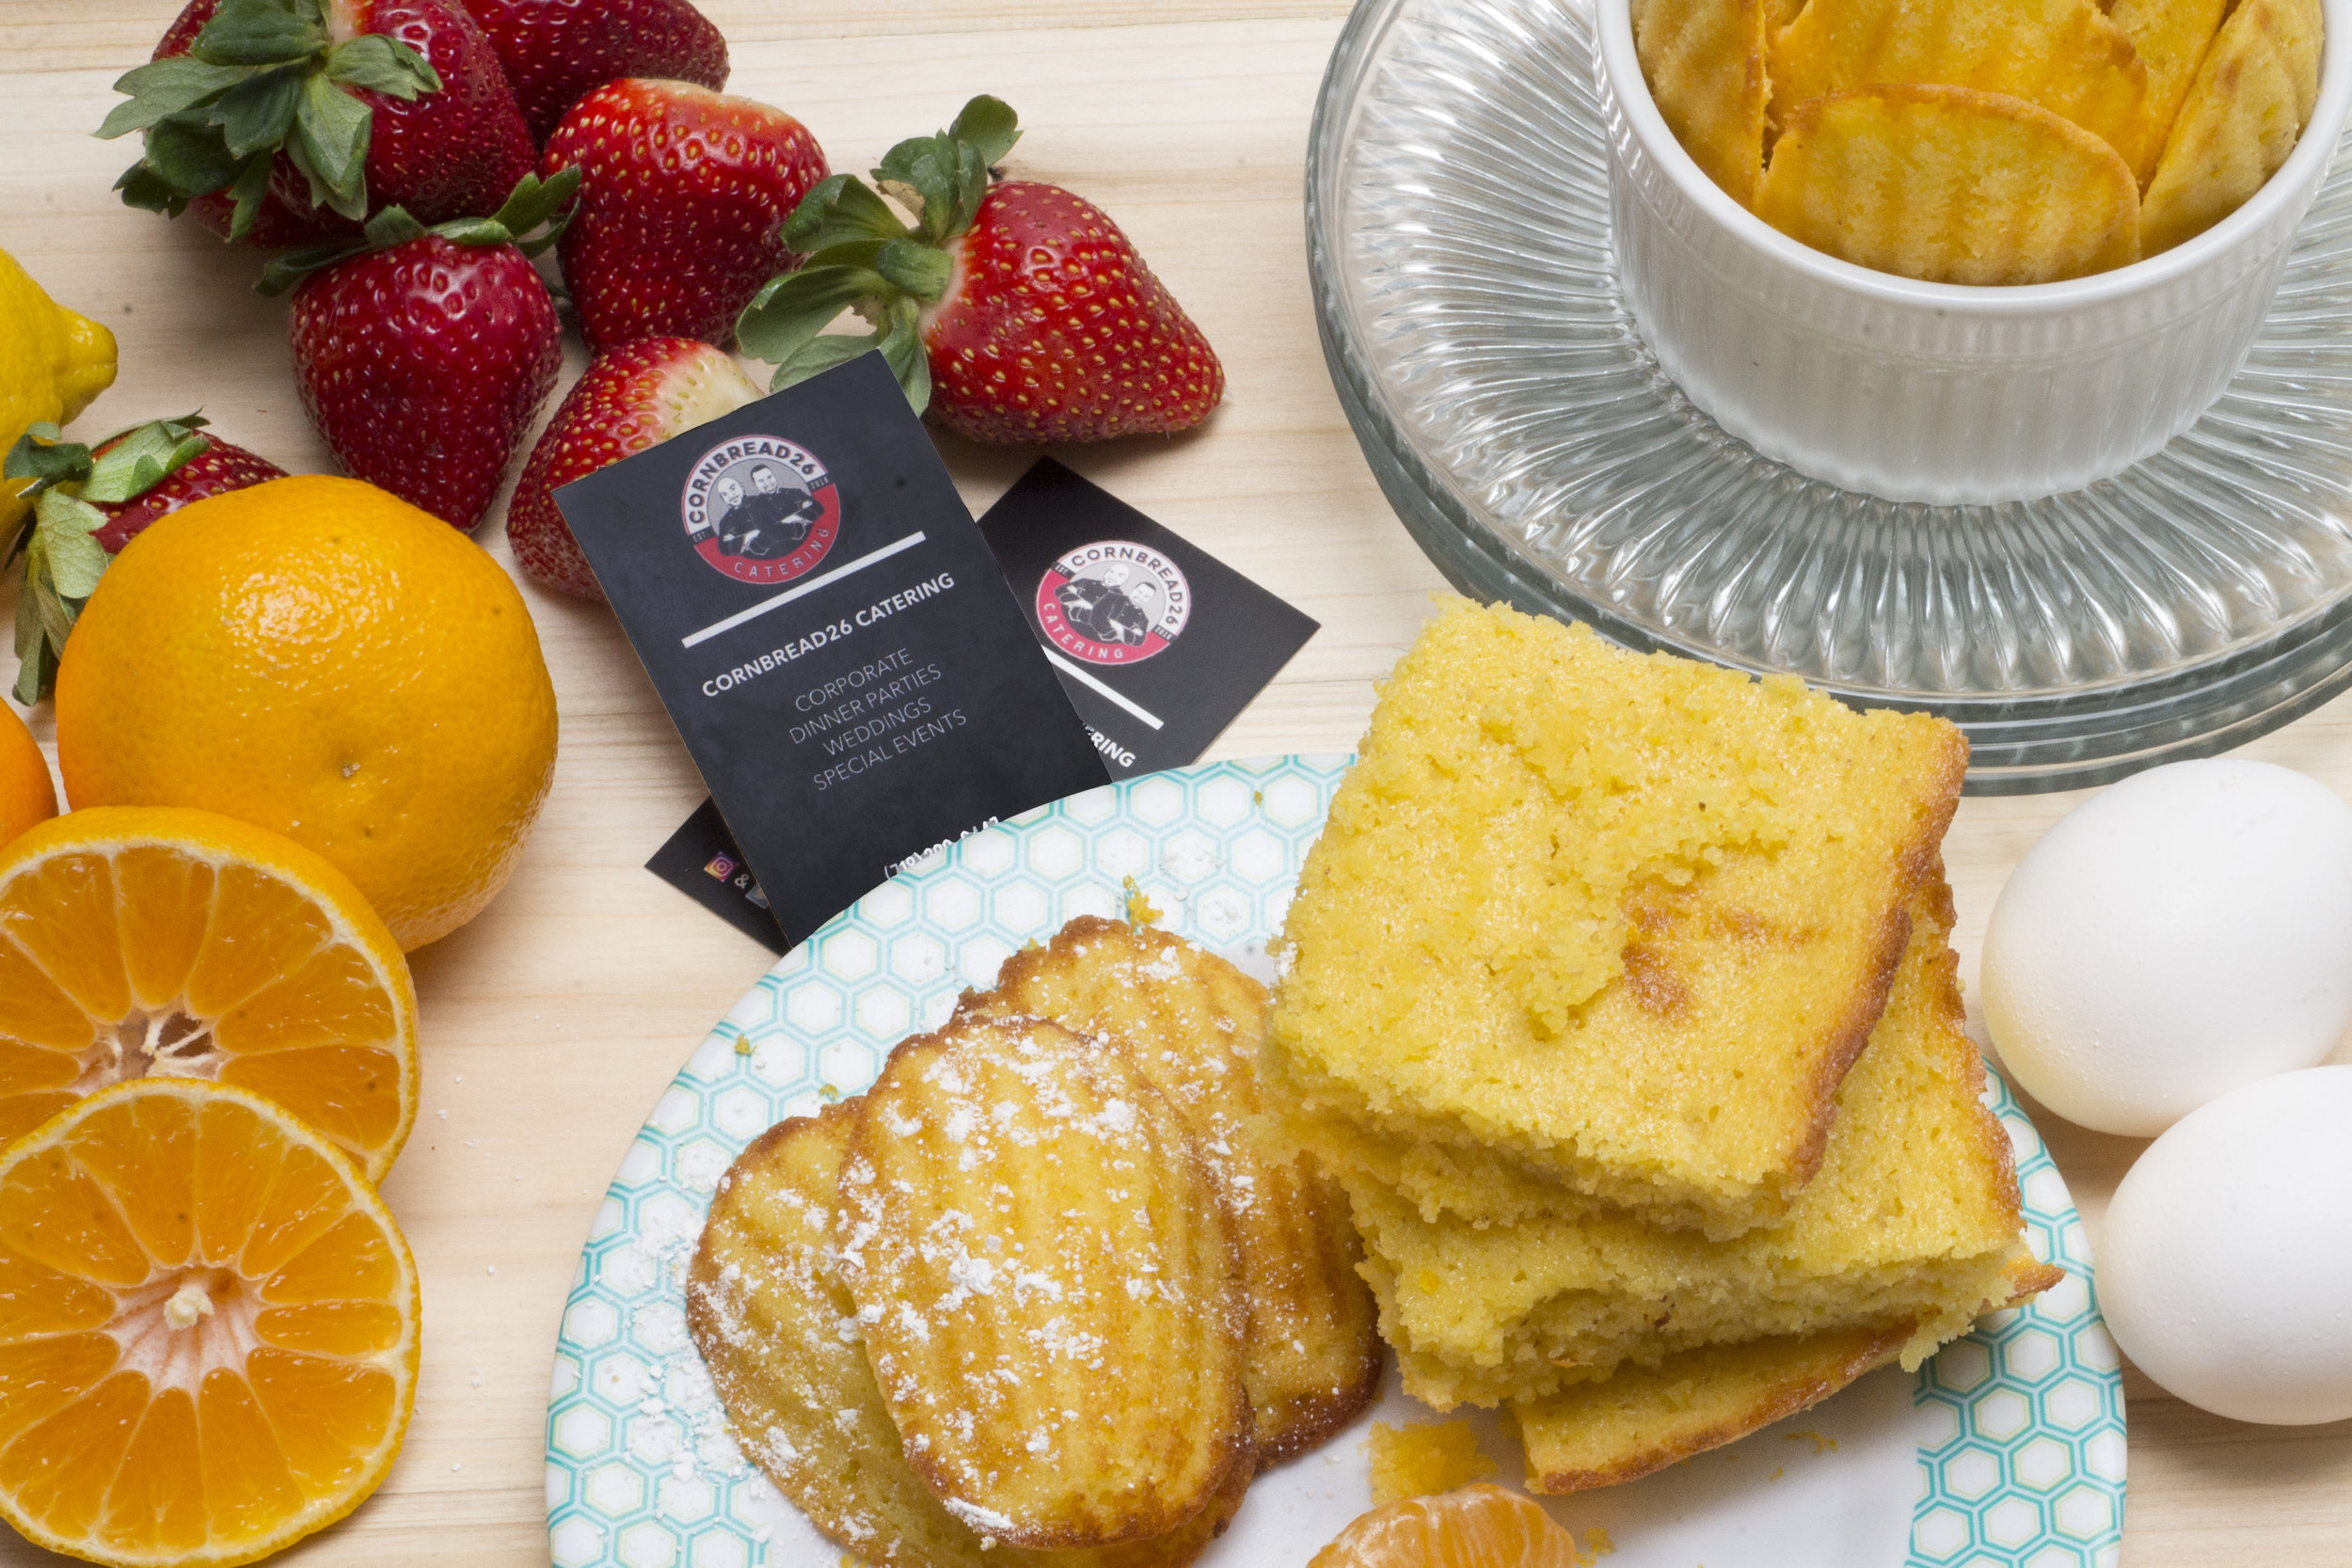 CORNBREAD BREAKFAST SPREAD